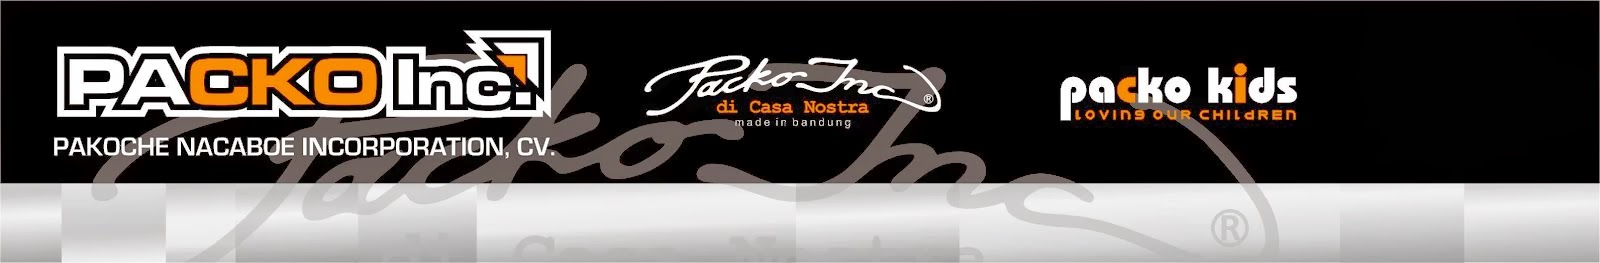 PACKO INC